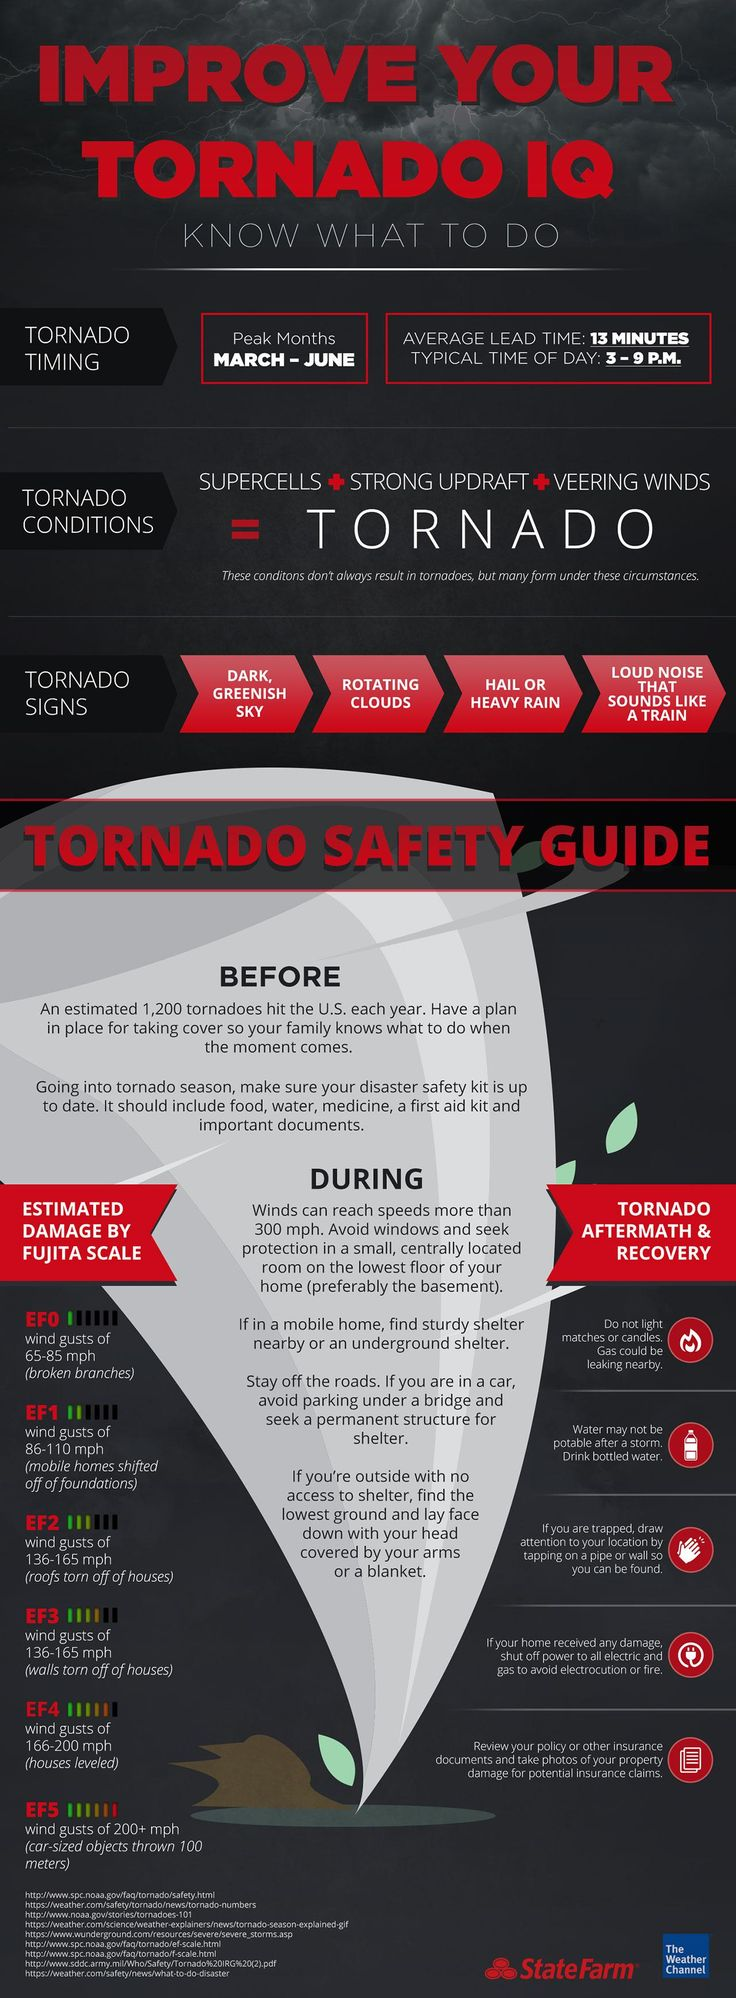 Improve Your Tornado IQ (And Know What To Do) | The Weather Channel